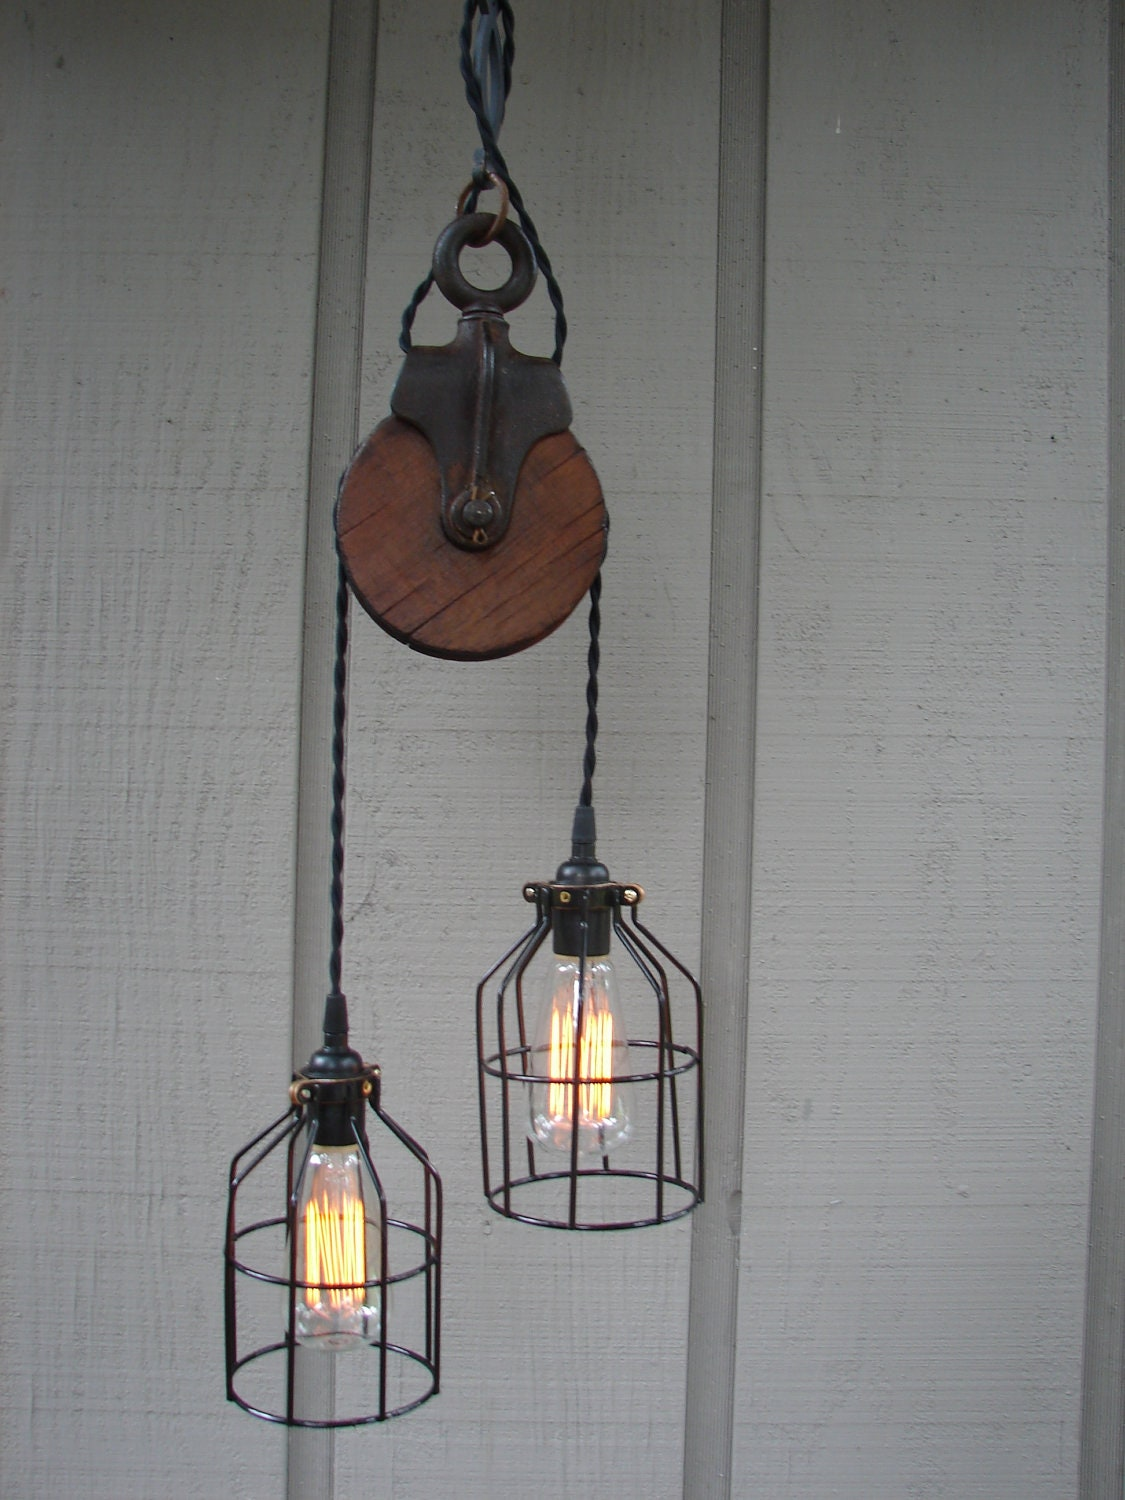 Upcycled Vintage Farm Pulley Lighting Pendant with Bulb Cages